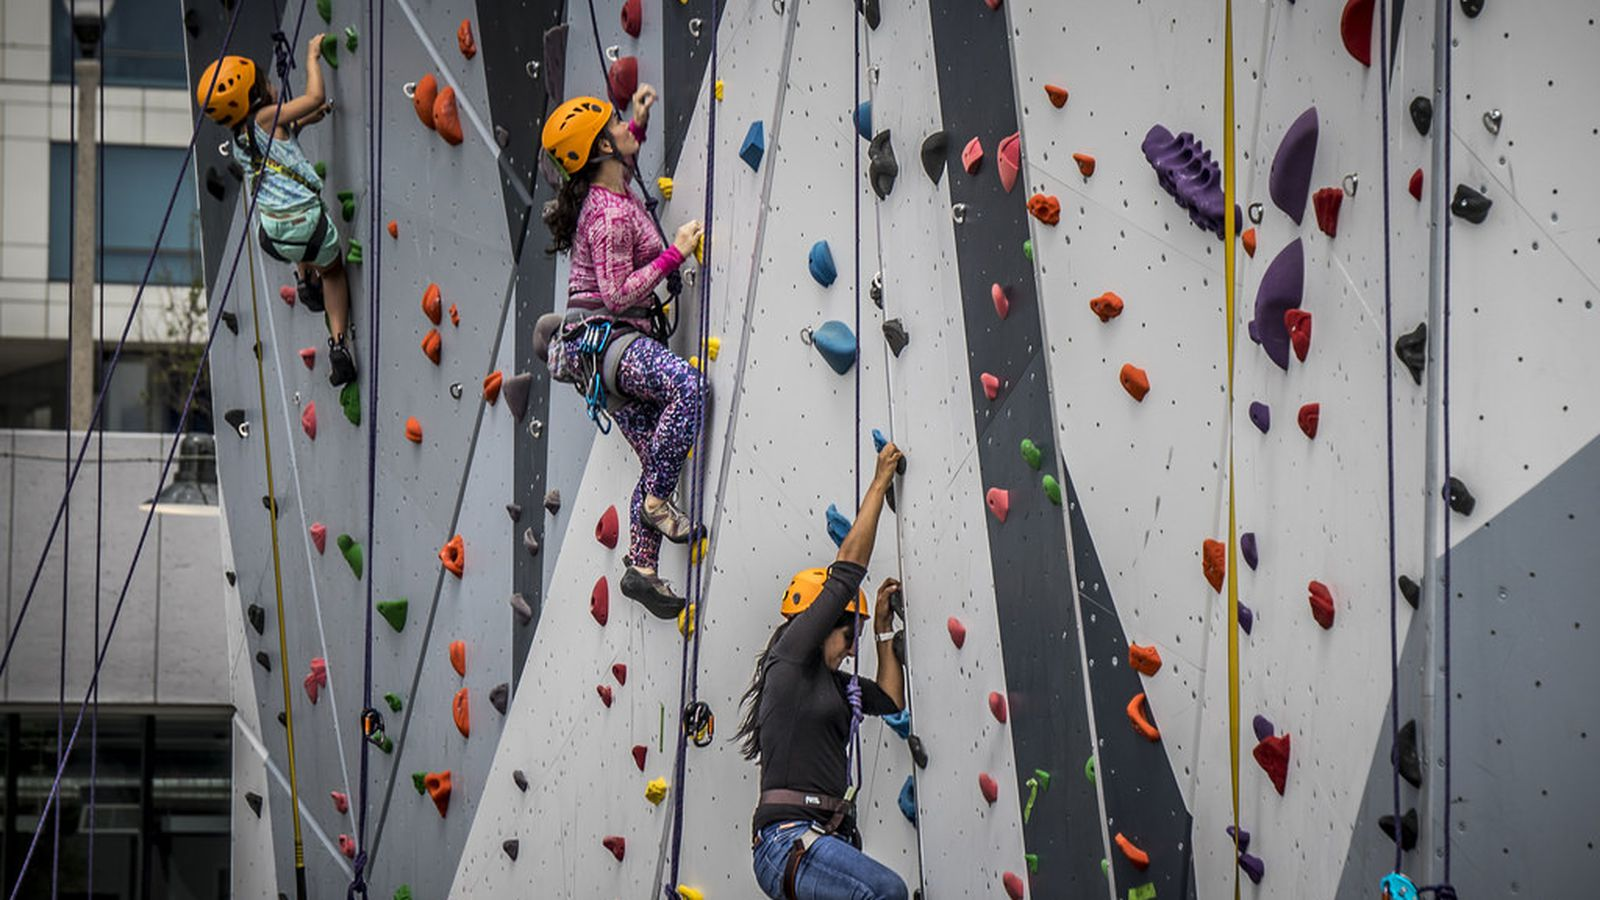 Navy Pier to Add New Outdoor Climbing Wall - Curbed Chicago